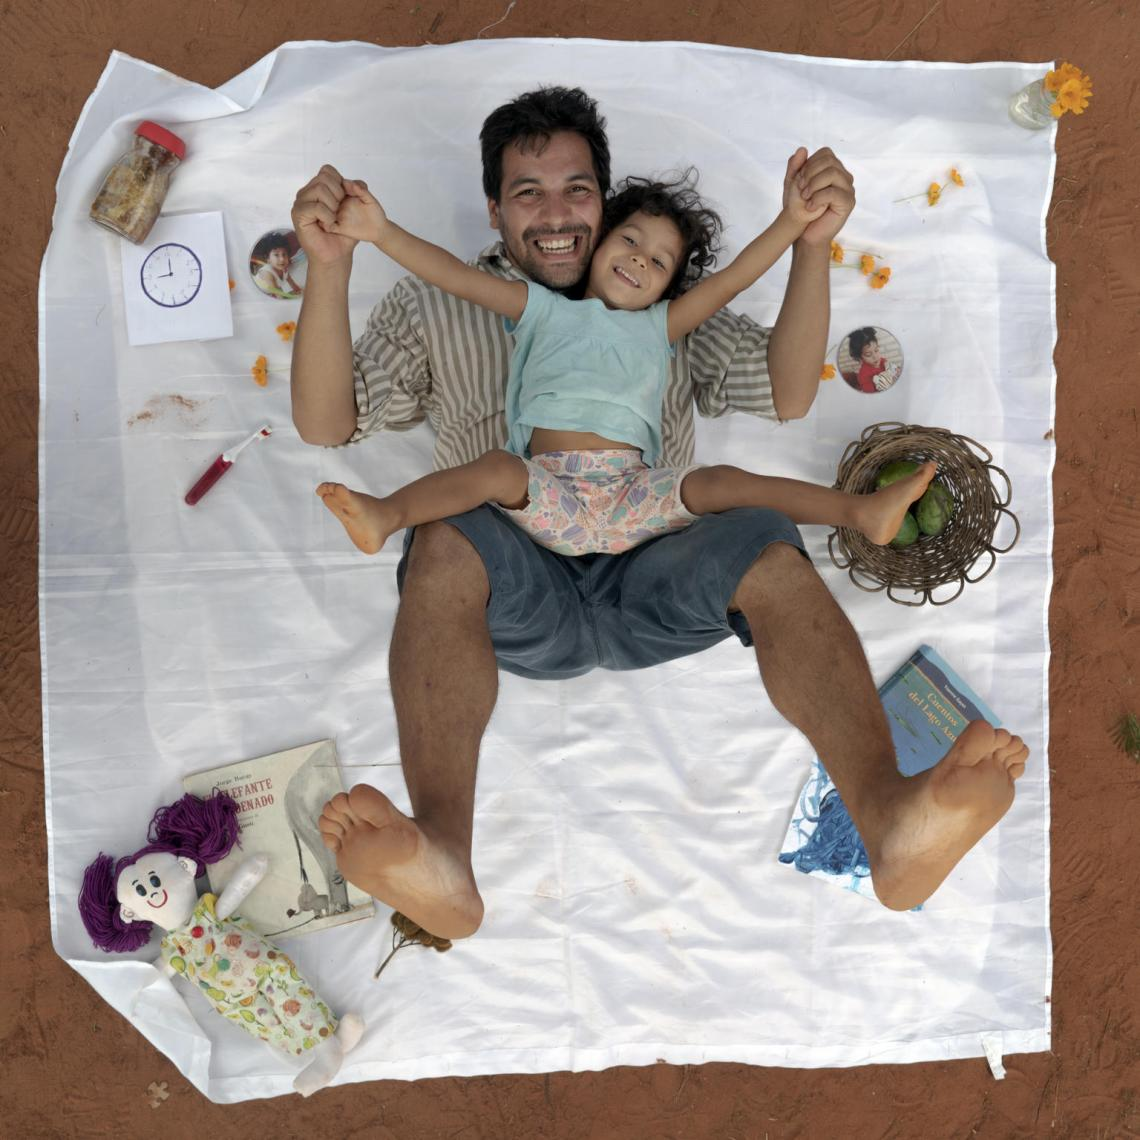 Rafael and Selva pose for a portrait with items that represent the family's change in lifestyle.